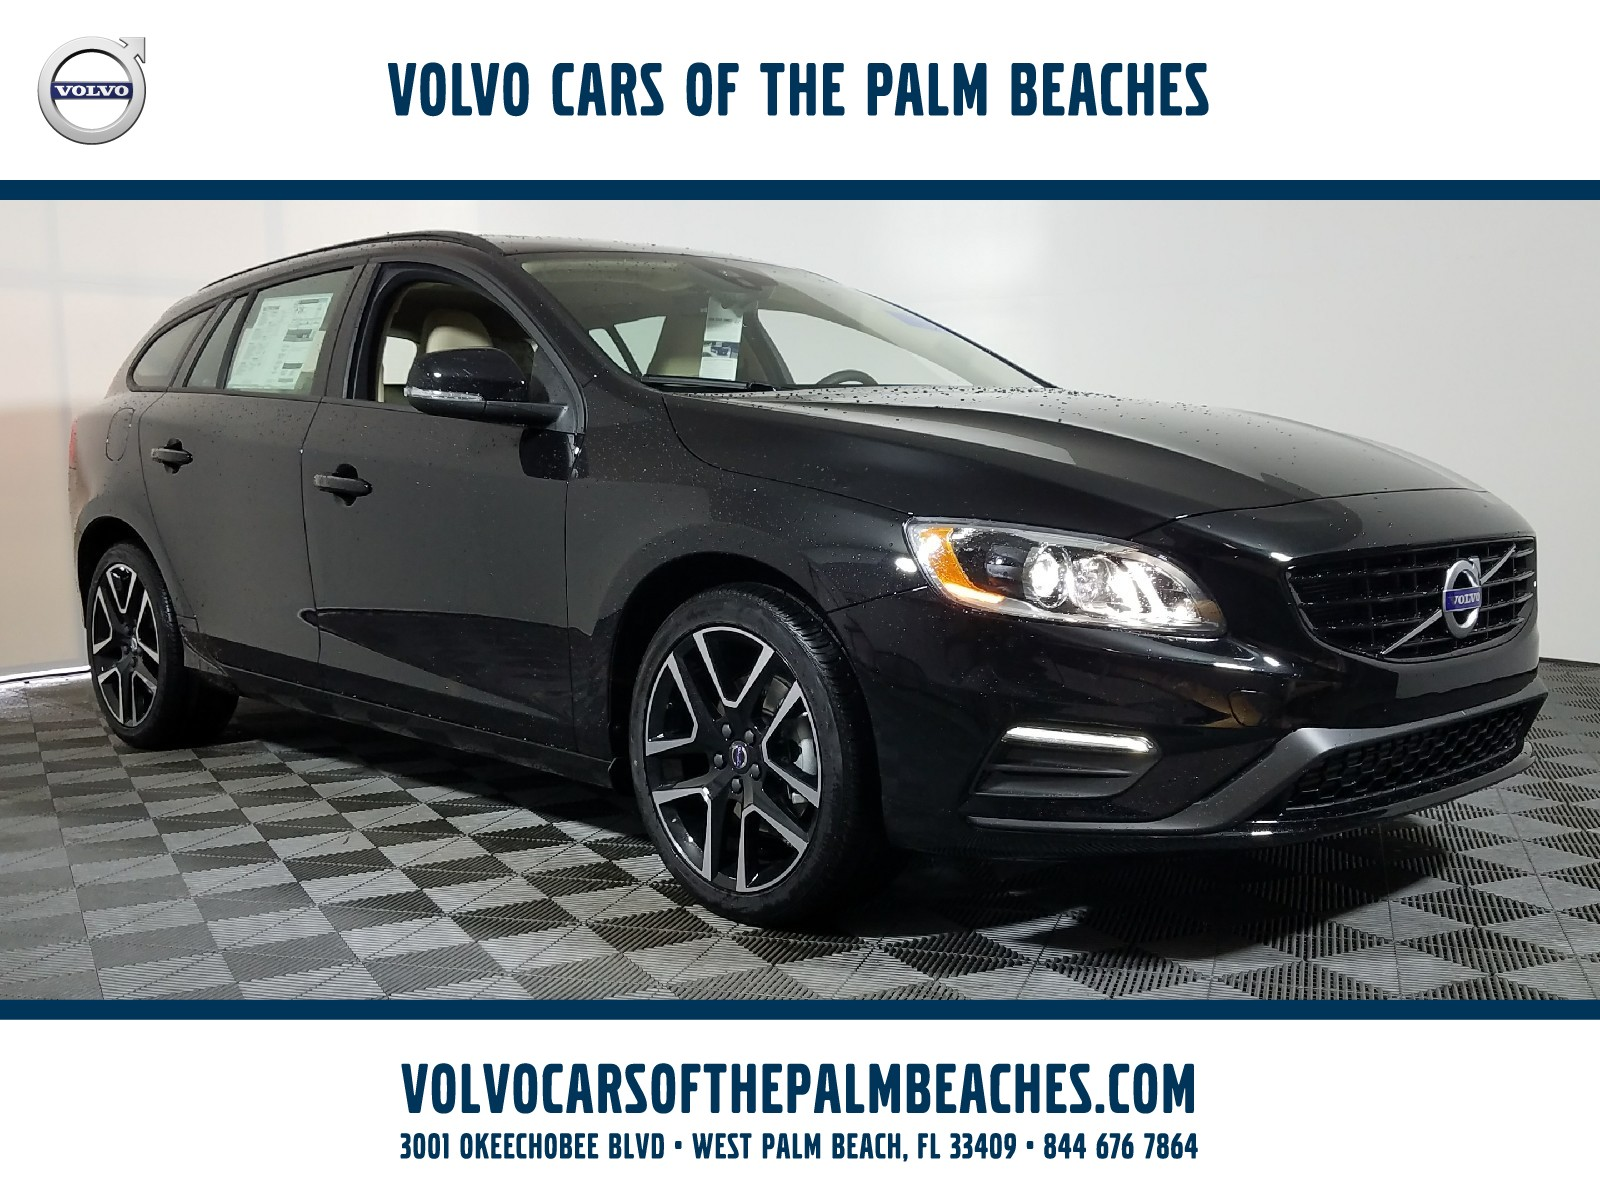 2019 volvo v60 for sale in west palm beach fl schumacher volvo cars of the palm beaches. Black Bedroom Furniture Sets. Home Design Ideas